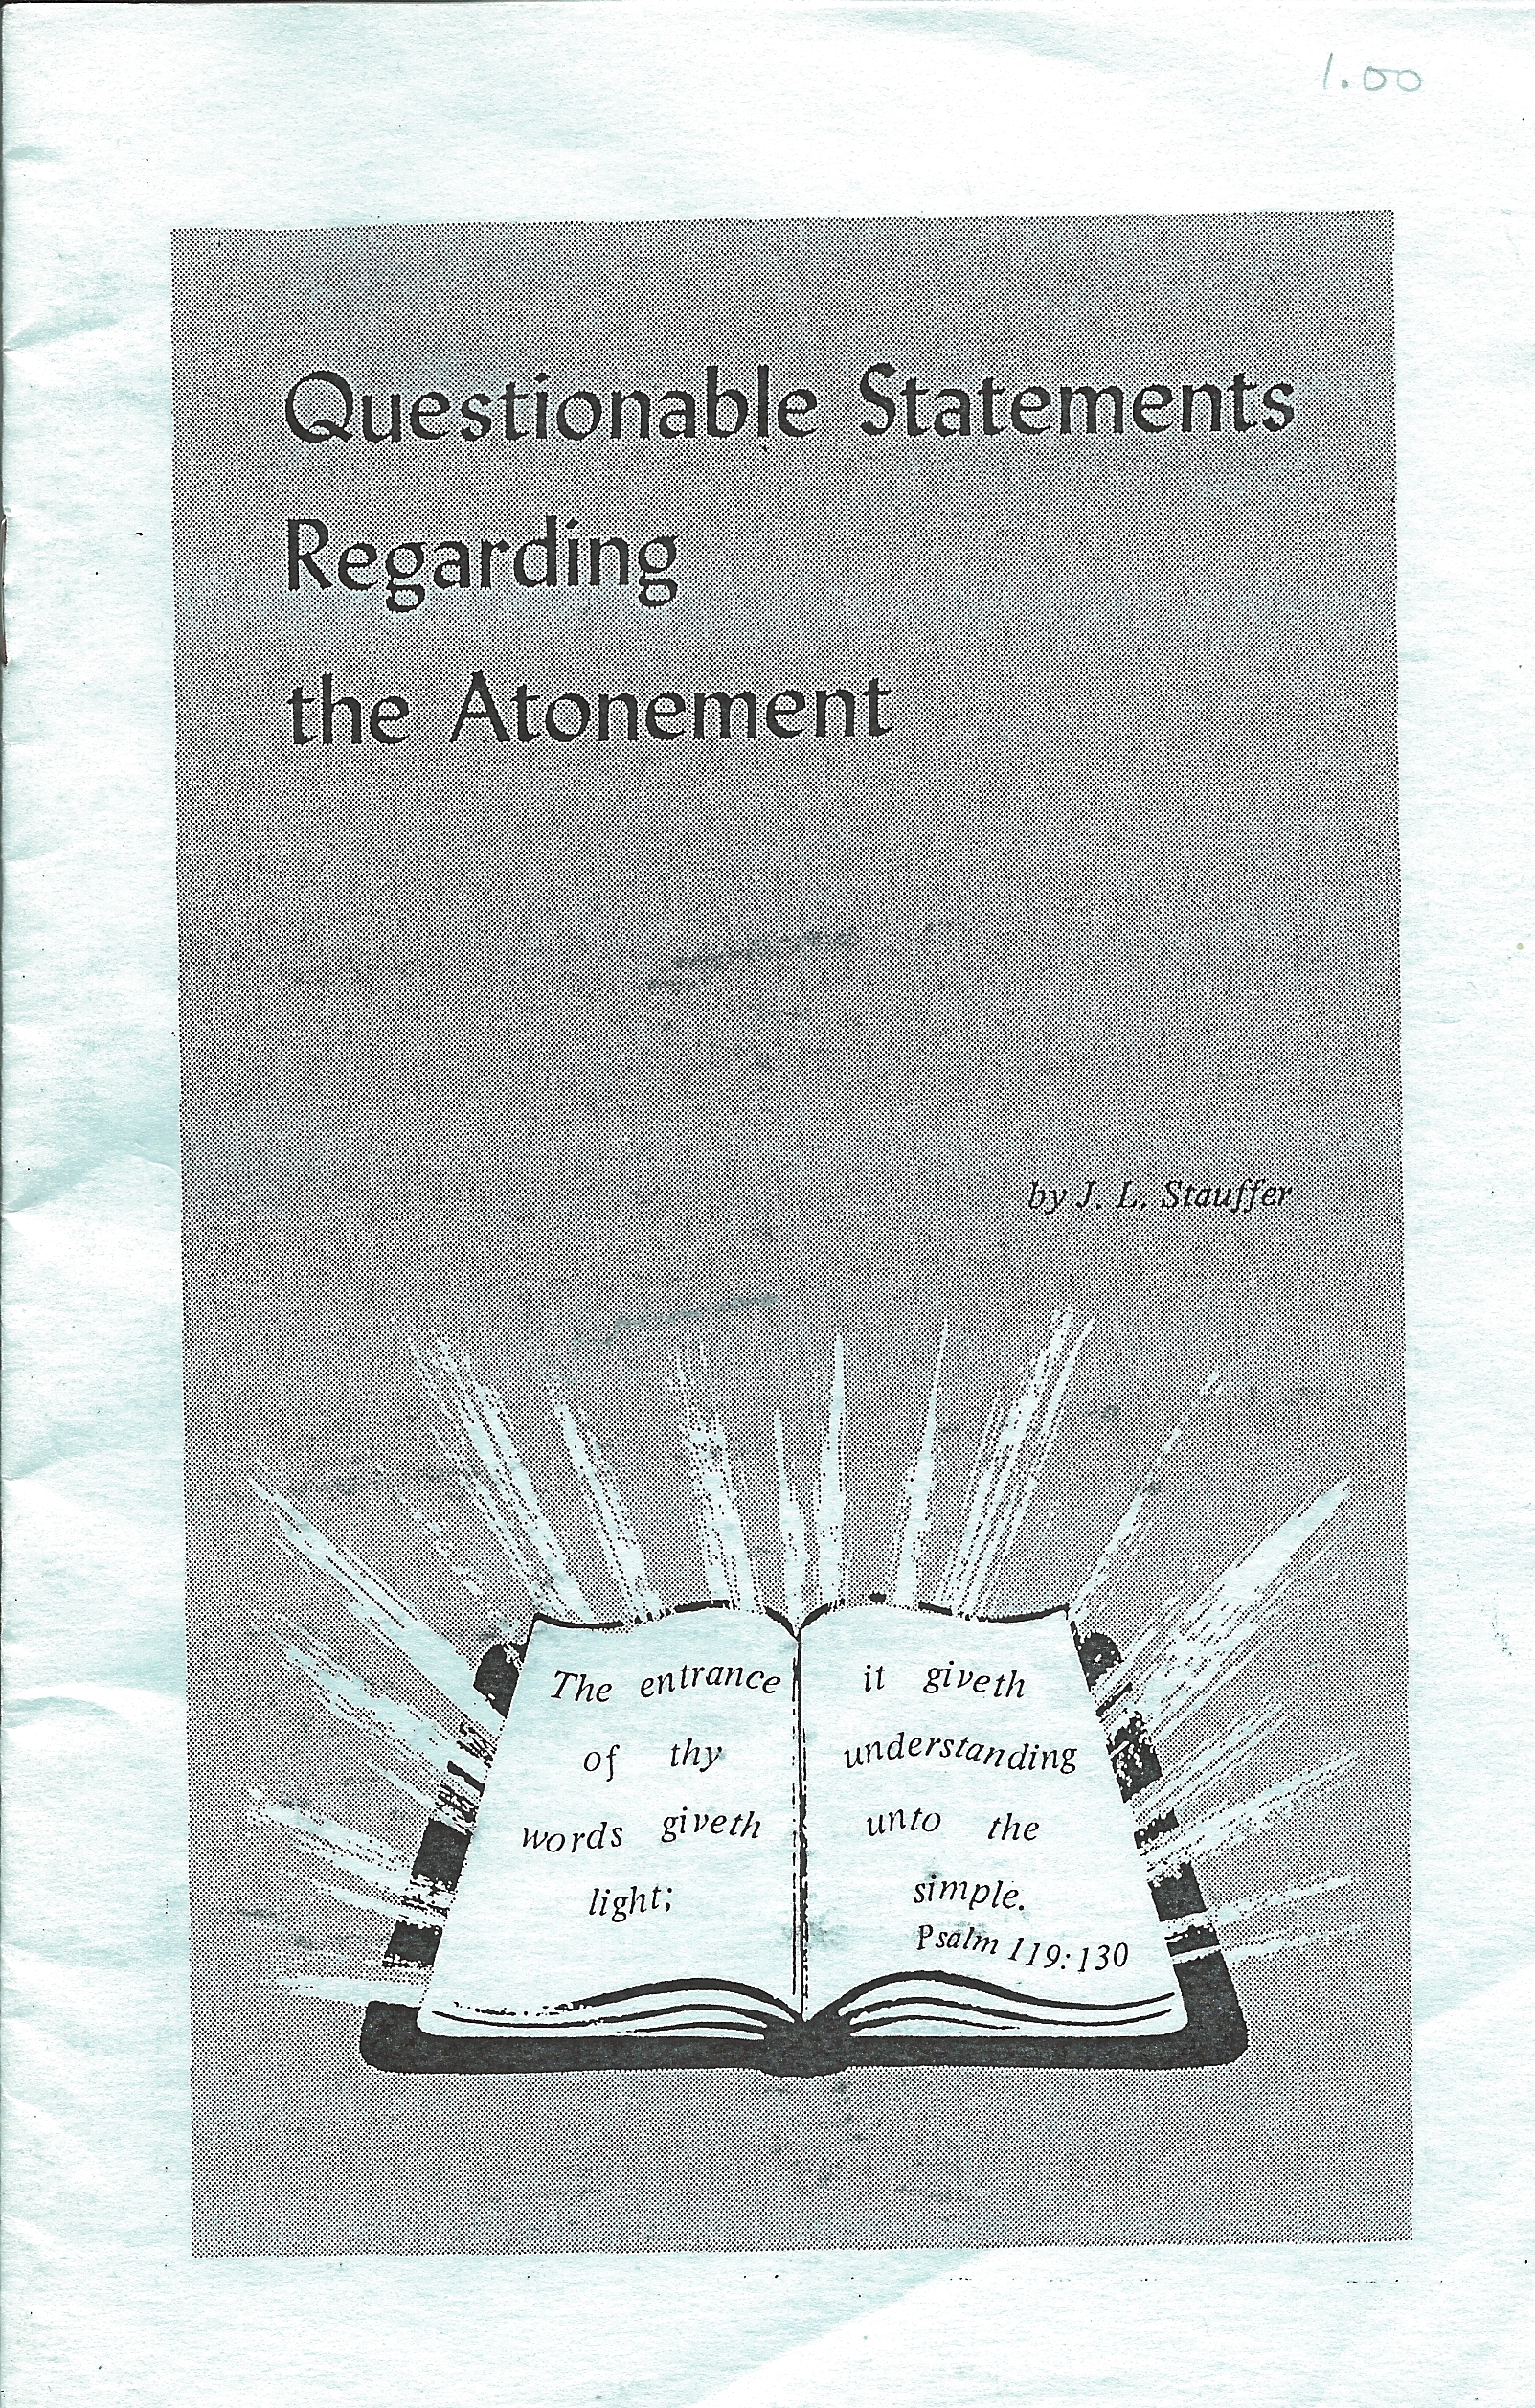 QUESTIONABLE STATEMENTS REGARDING THE ATONEMENT J.L.Stauffer